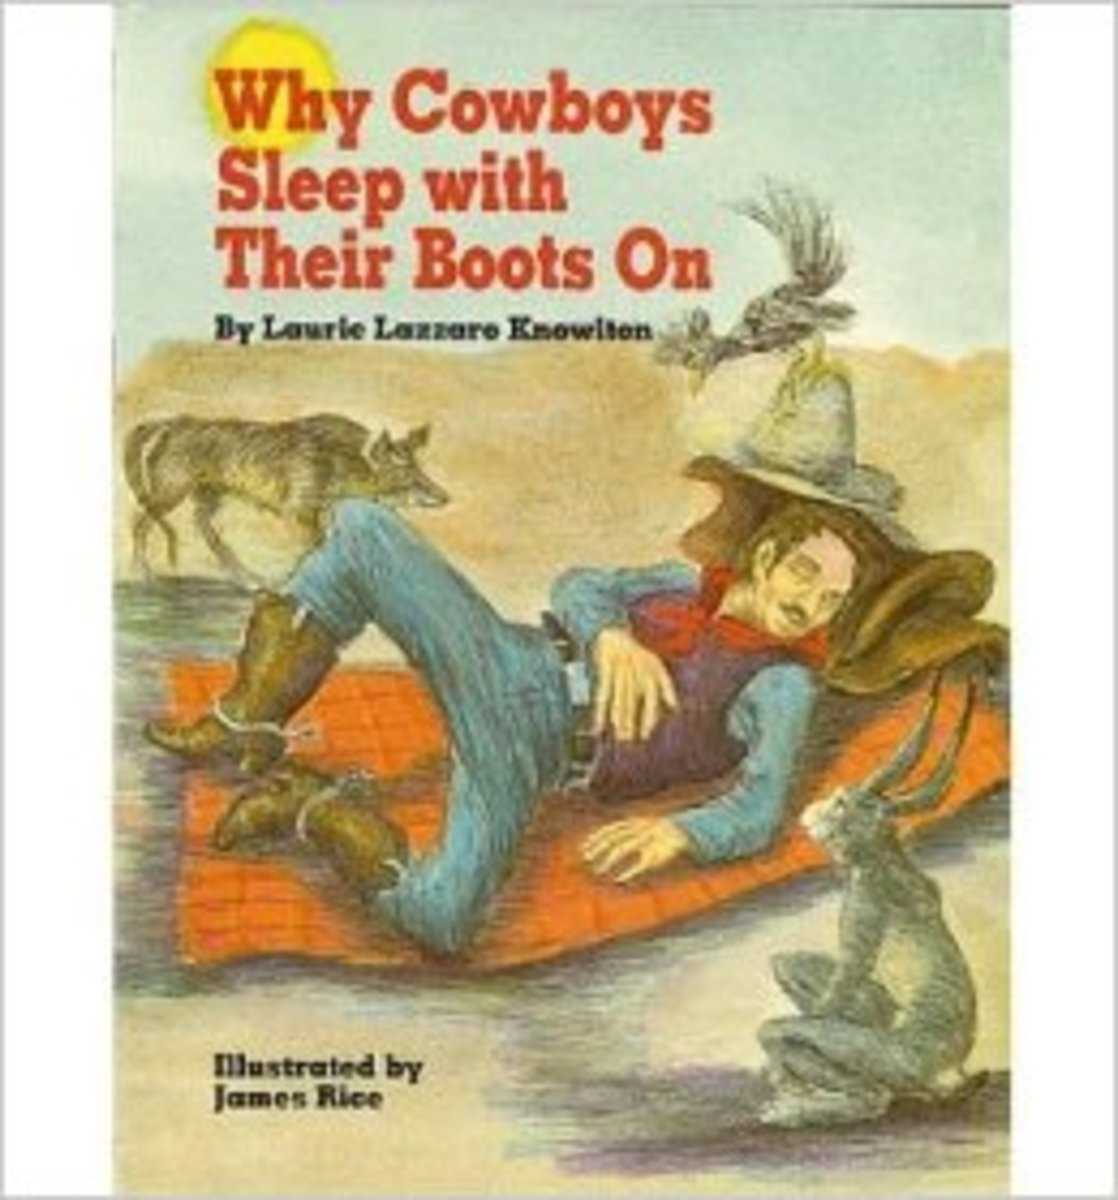 Why Cowboys Sleep With Their Boots On (Why Cowboys Series) by Laurie Knowlton